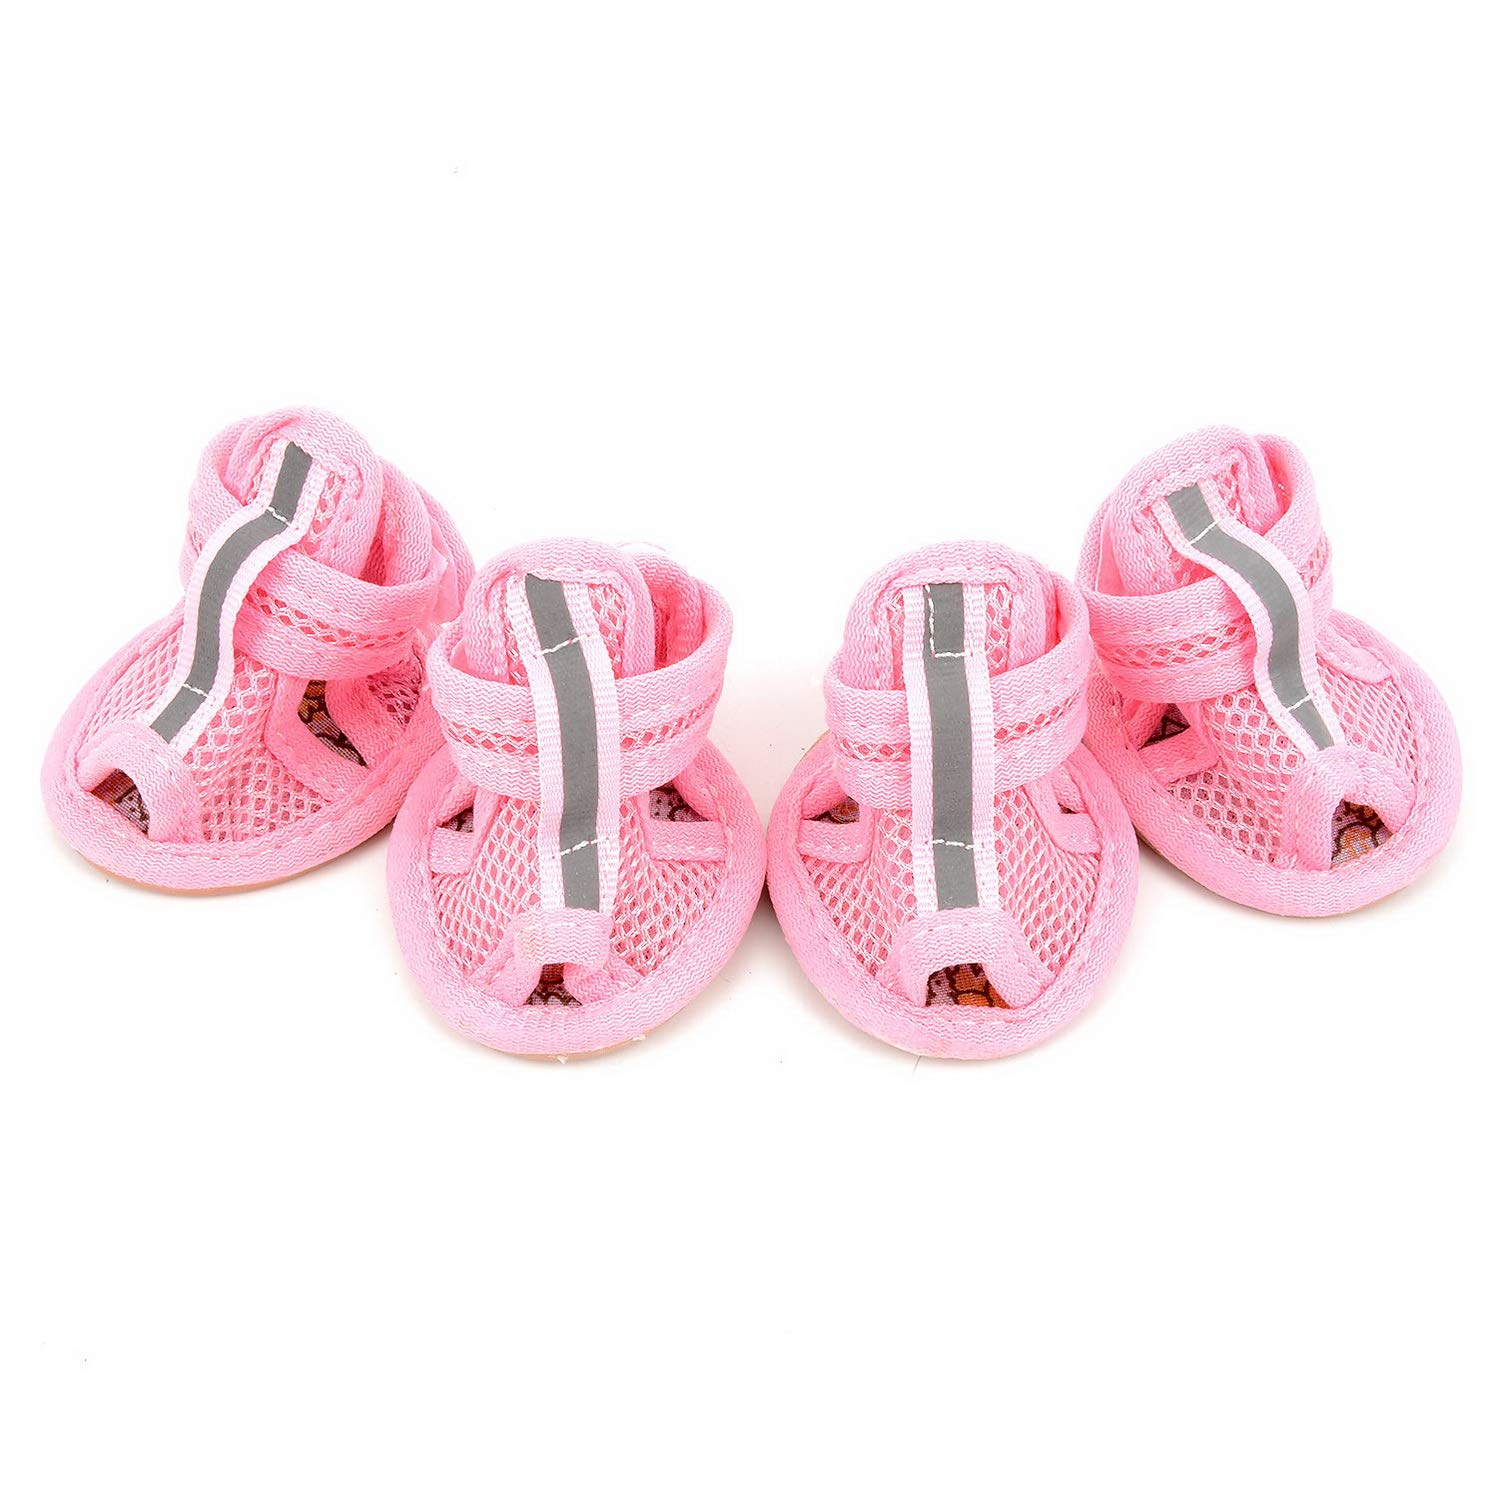 smalllee_lucky_store Girls Boys Summer Adjustable Breathable Sandals Rubber Sole Mesh Shoe, Small, Pink